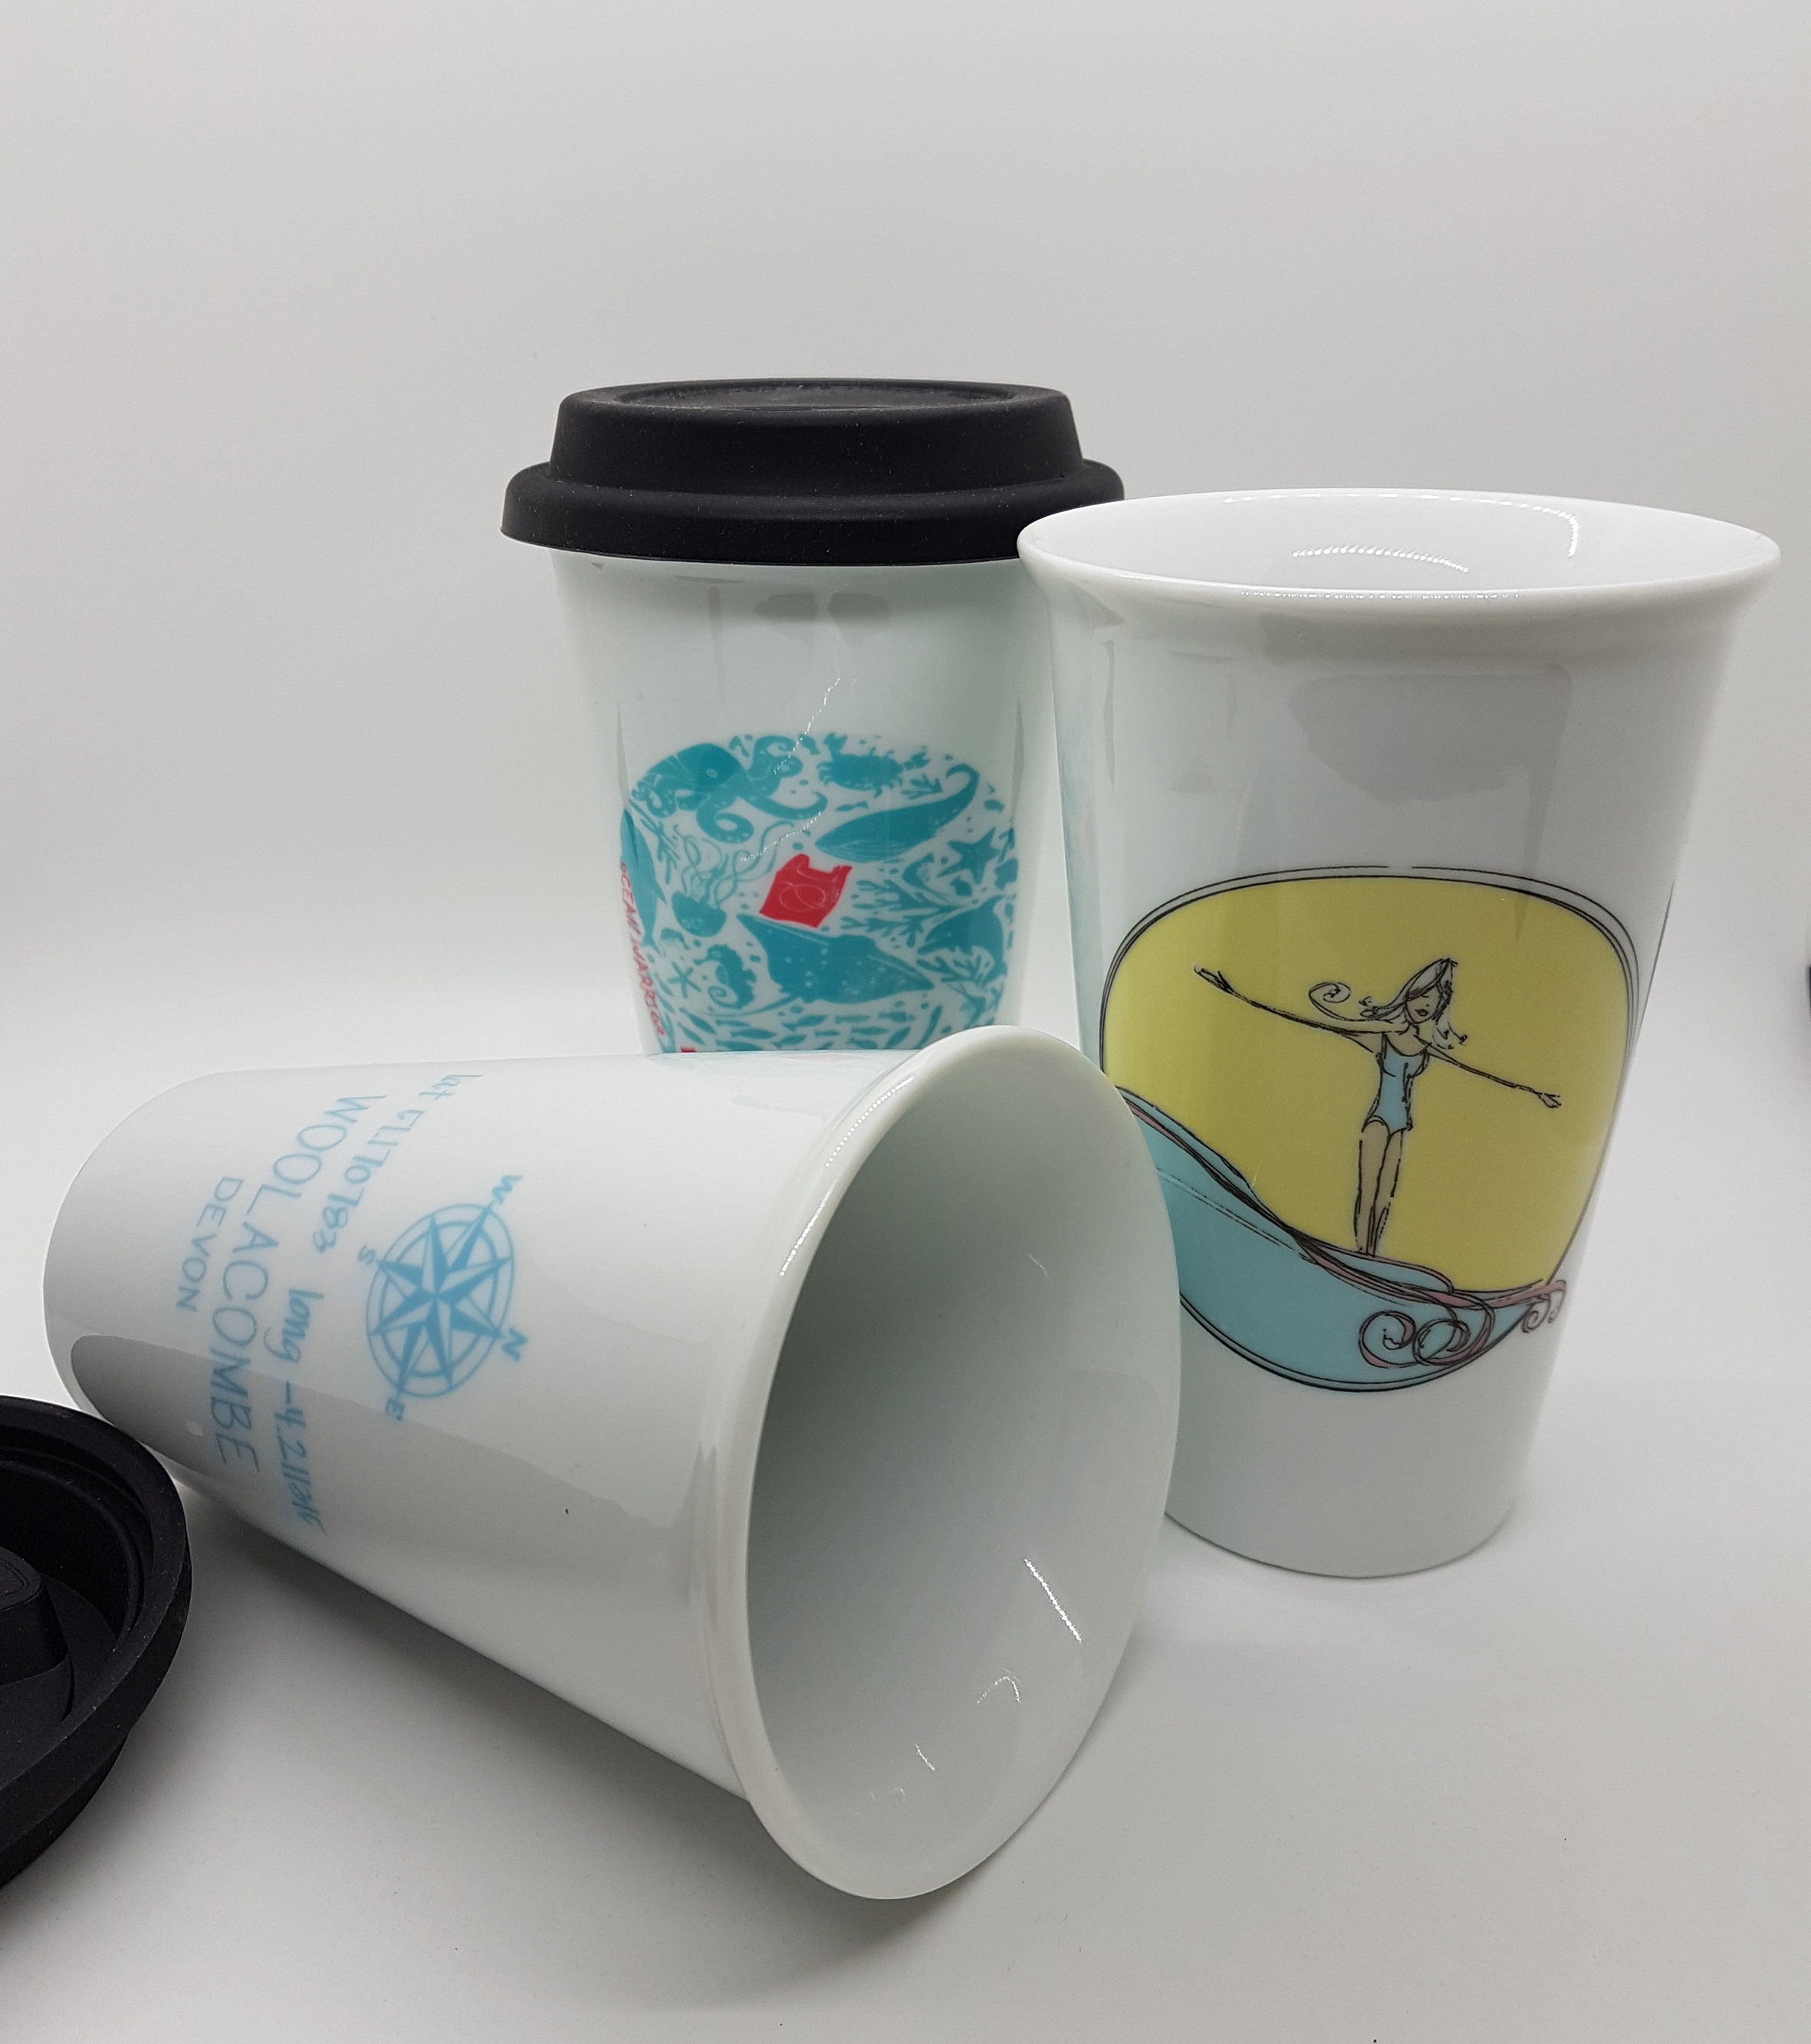 Mug. Woolacombe ceramic travel mug